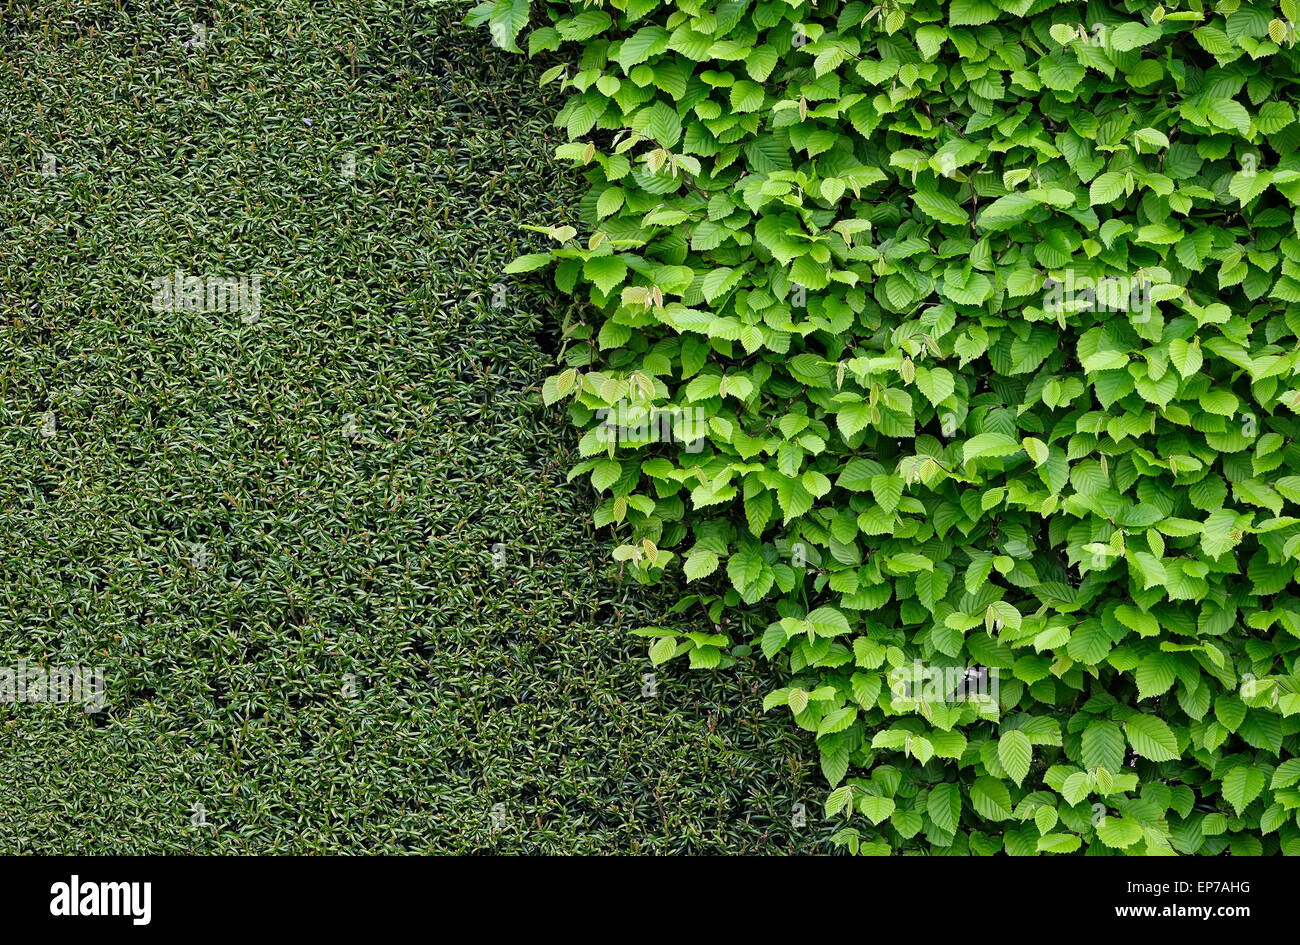 clipped yew hedge and green leaves in garden - Stock Image